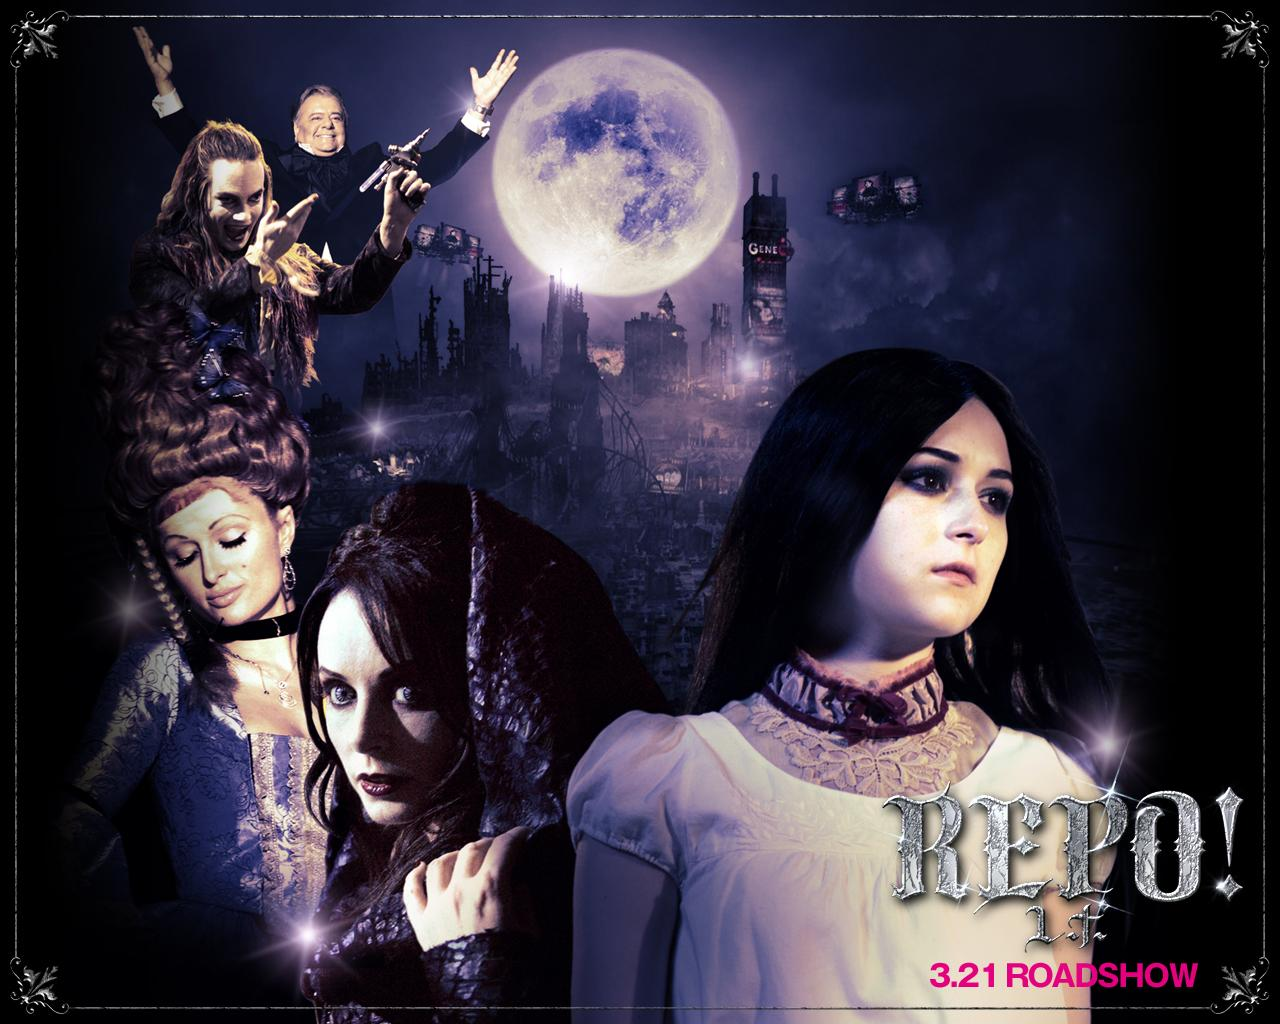 Wallpaper Repo! The Genetic Opera film Movies